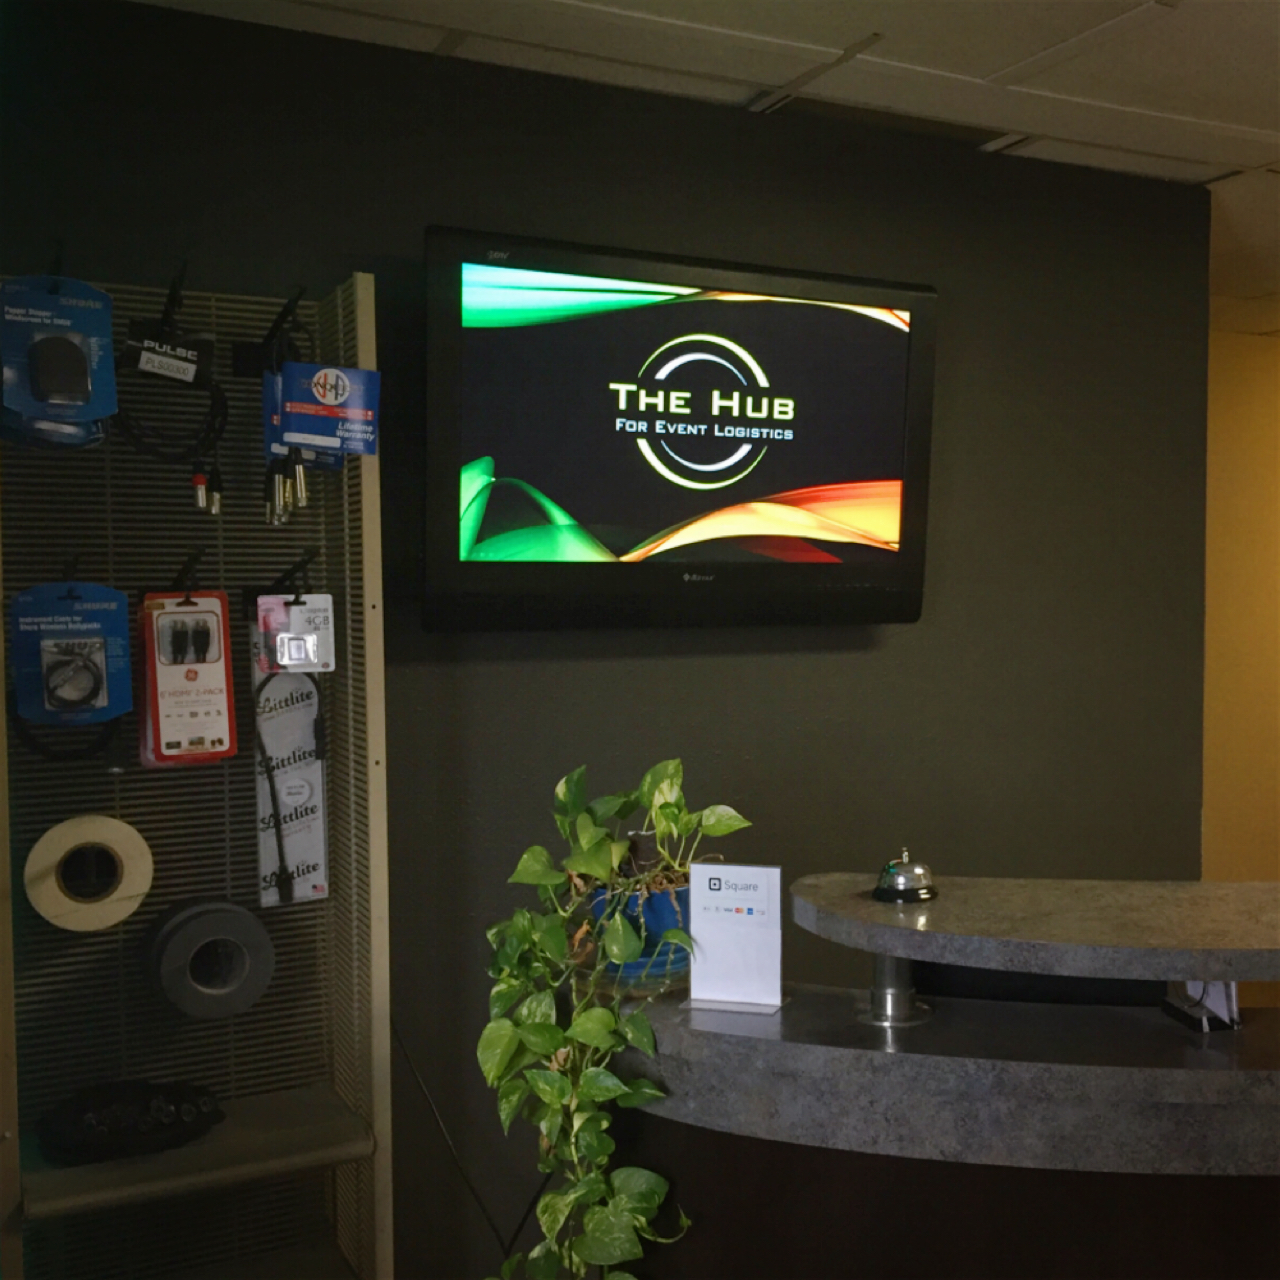 Audio Visual Resources is located at The Hub for Event Logistics  500 S 59th Ave. W Duluth, MN 55805  218.722.6219